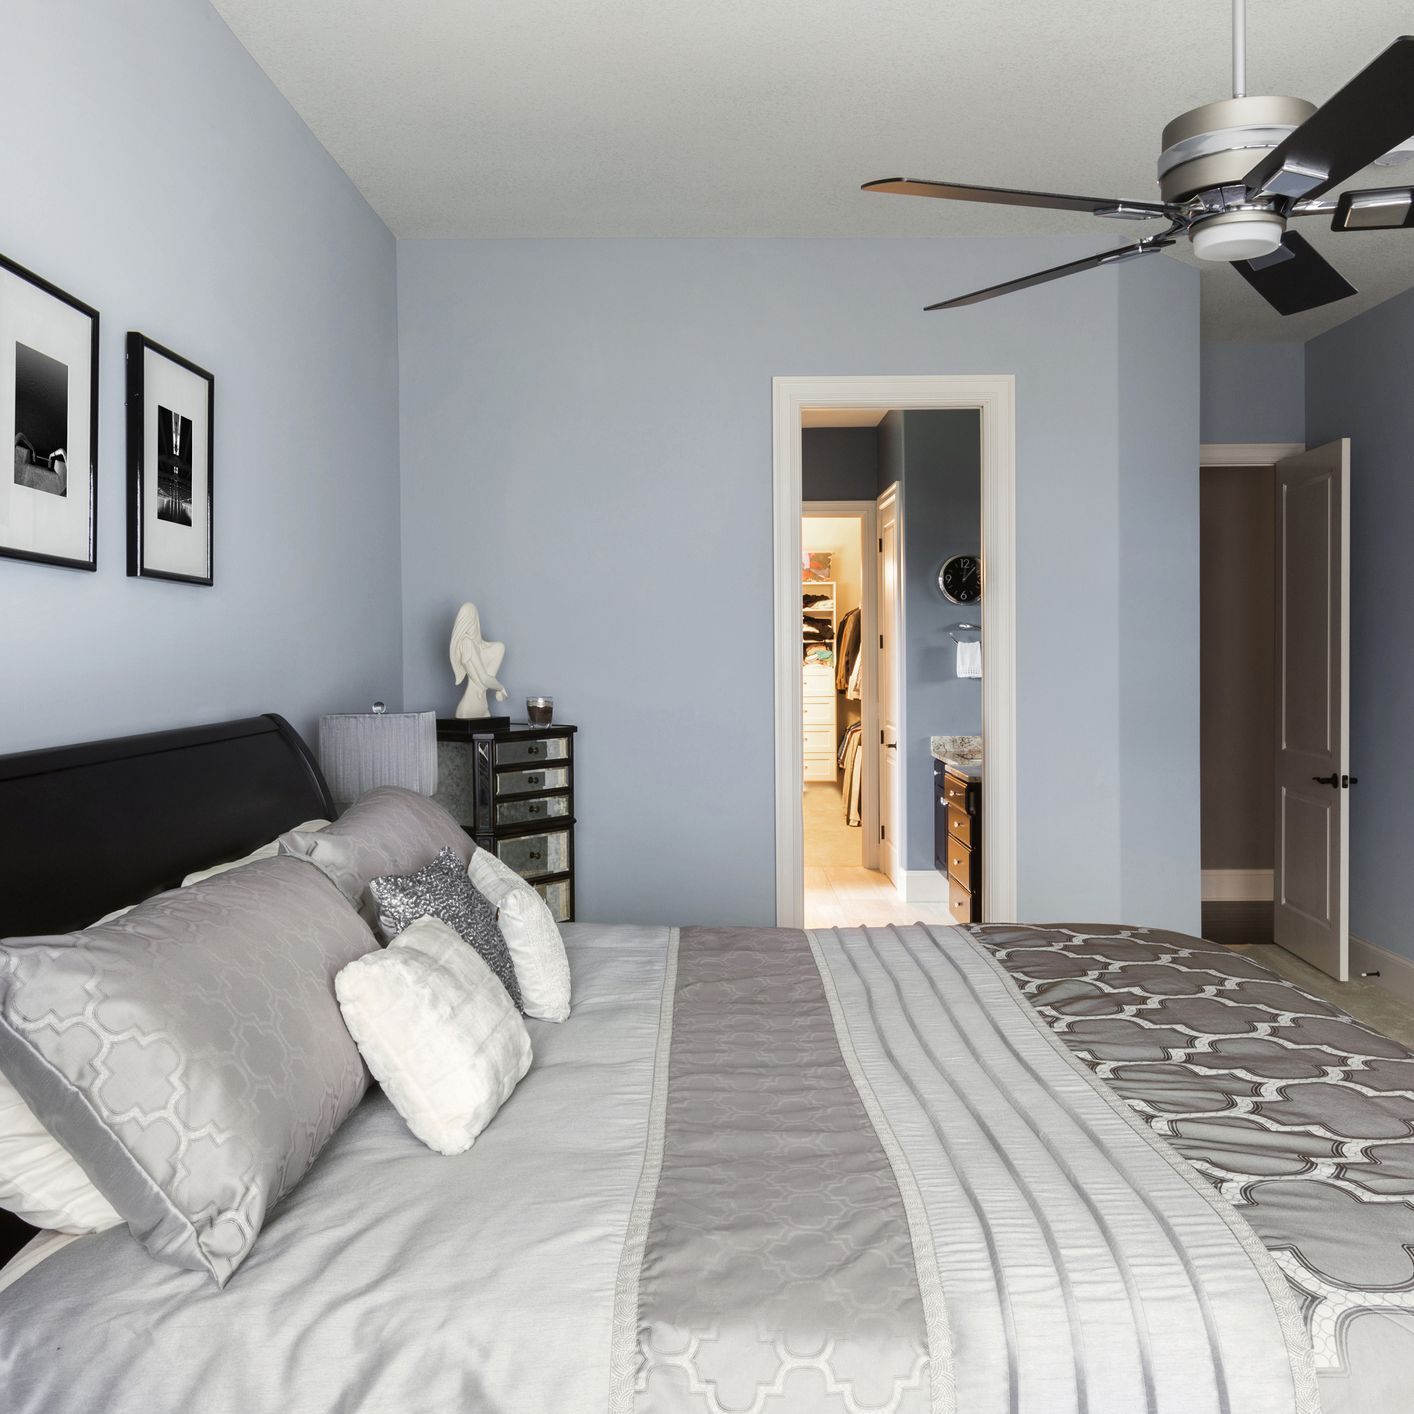 What Size Ceiling Fan Do I Need For Each Room